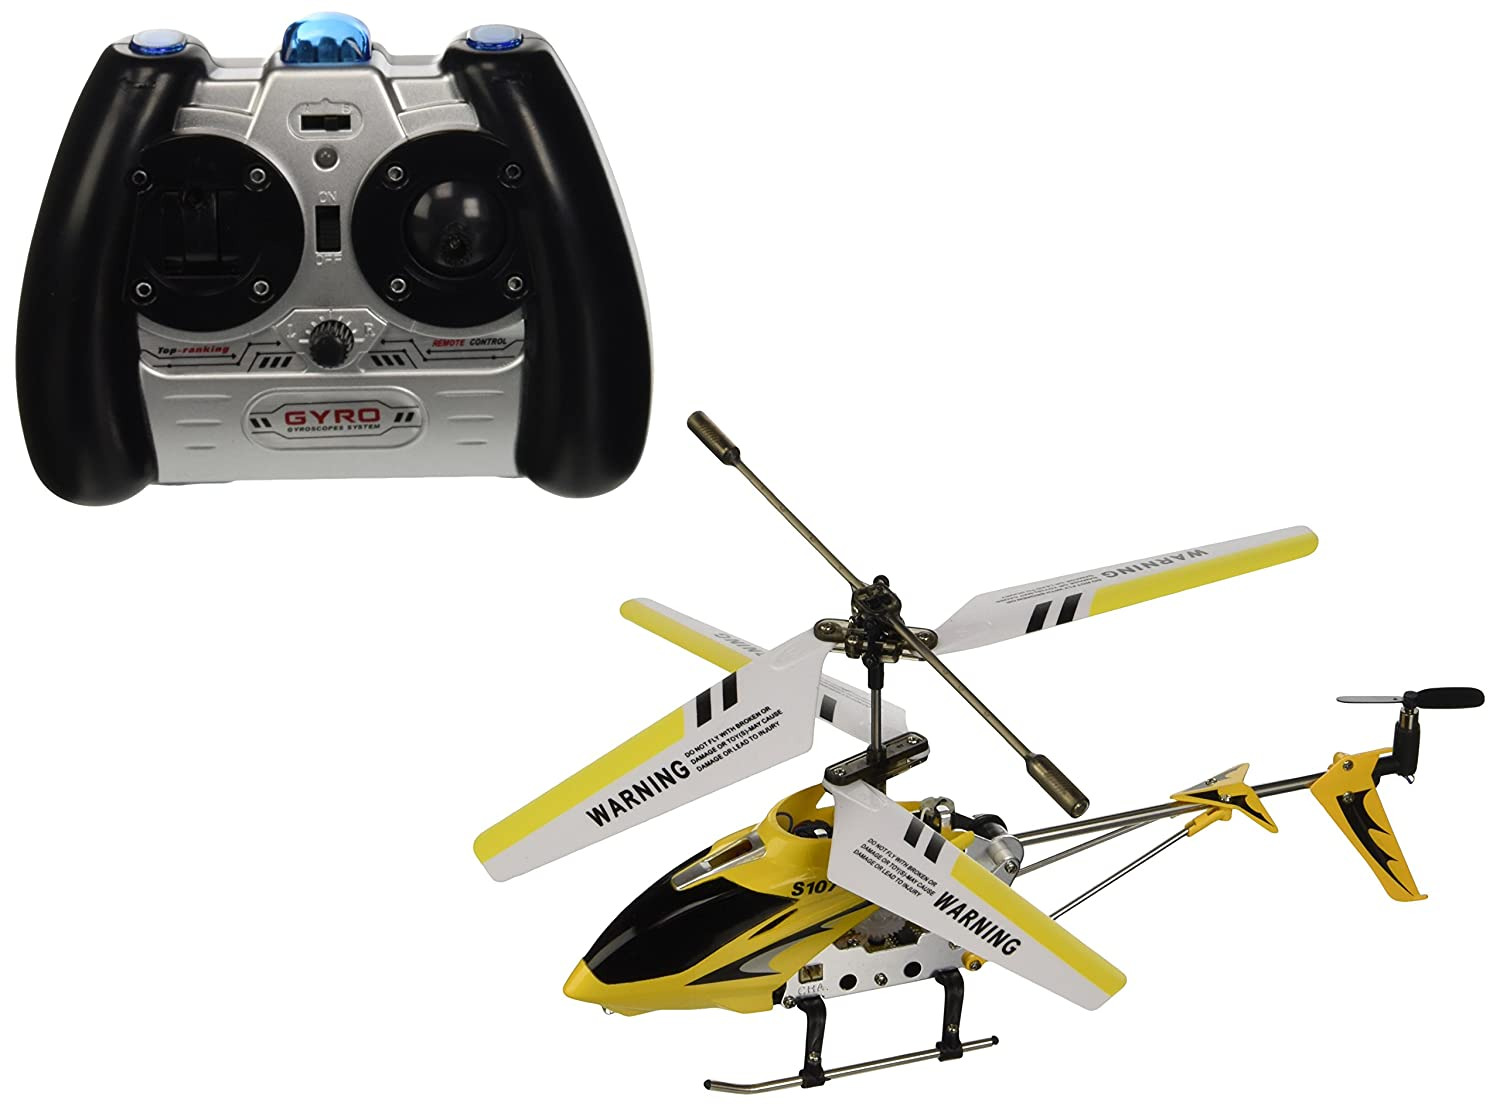 Top best gift for your dad this christmas - Syma S107/S107G R/C Helicopter